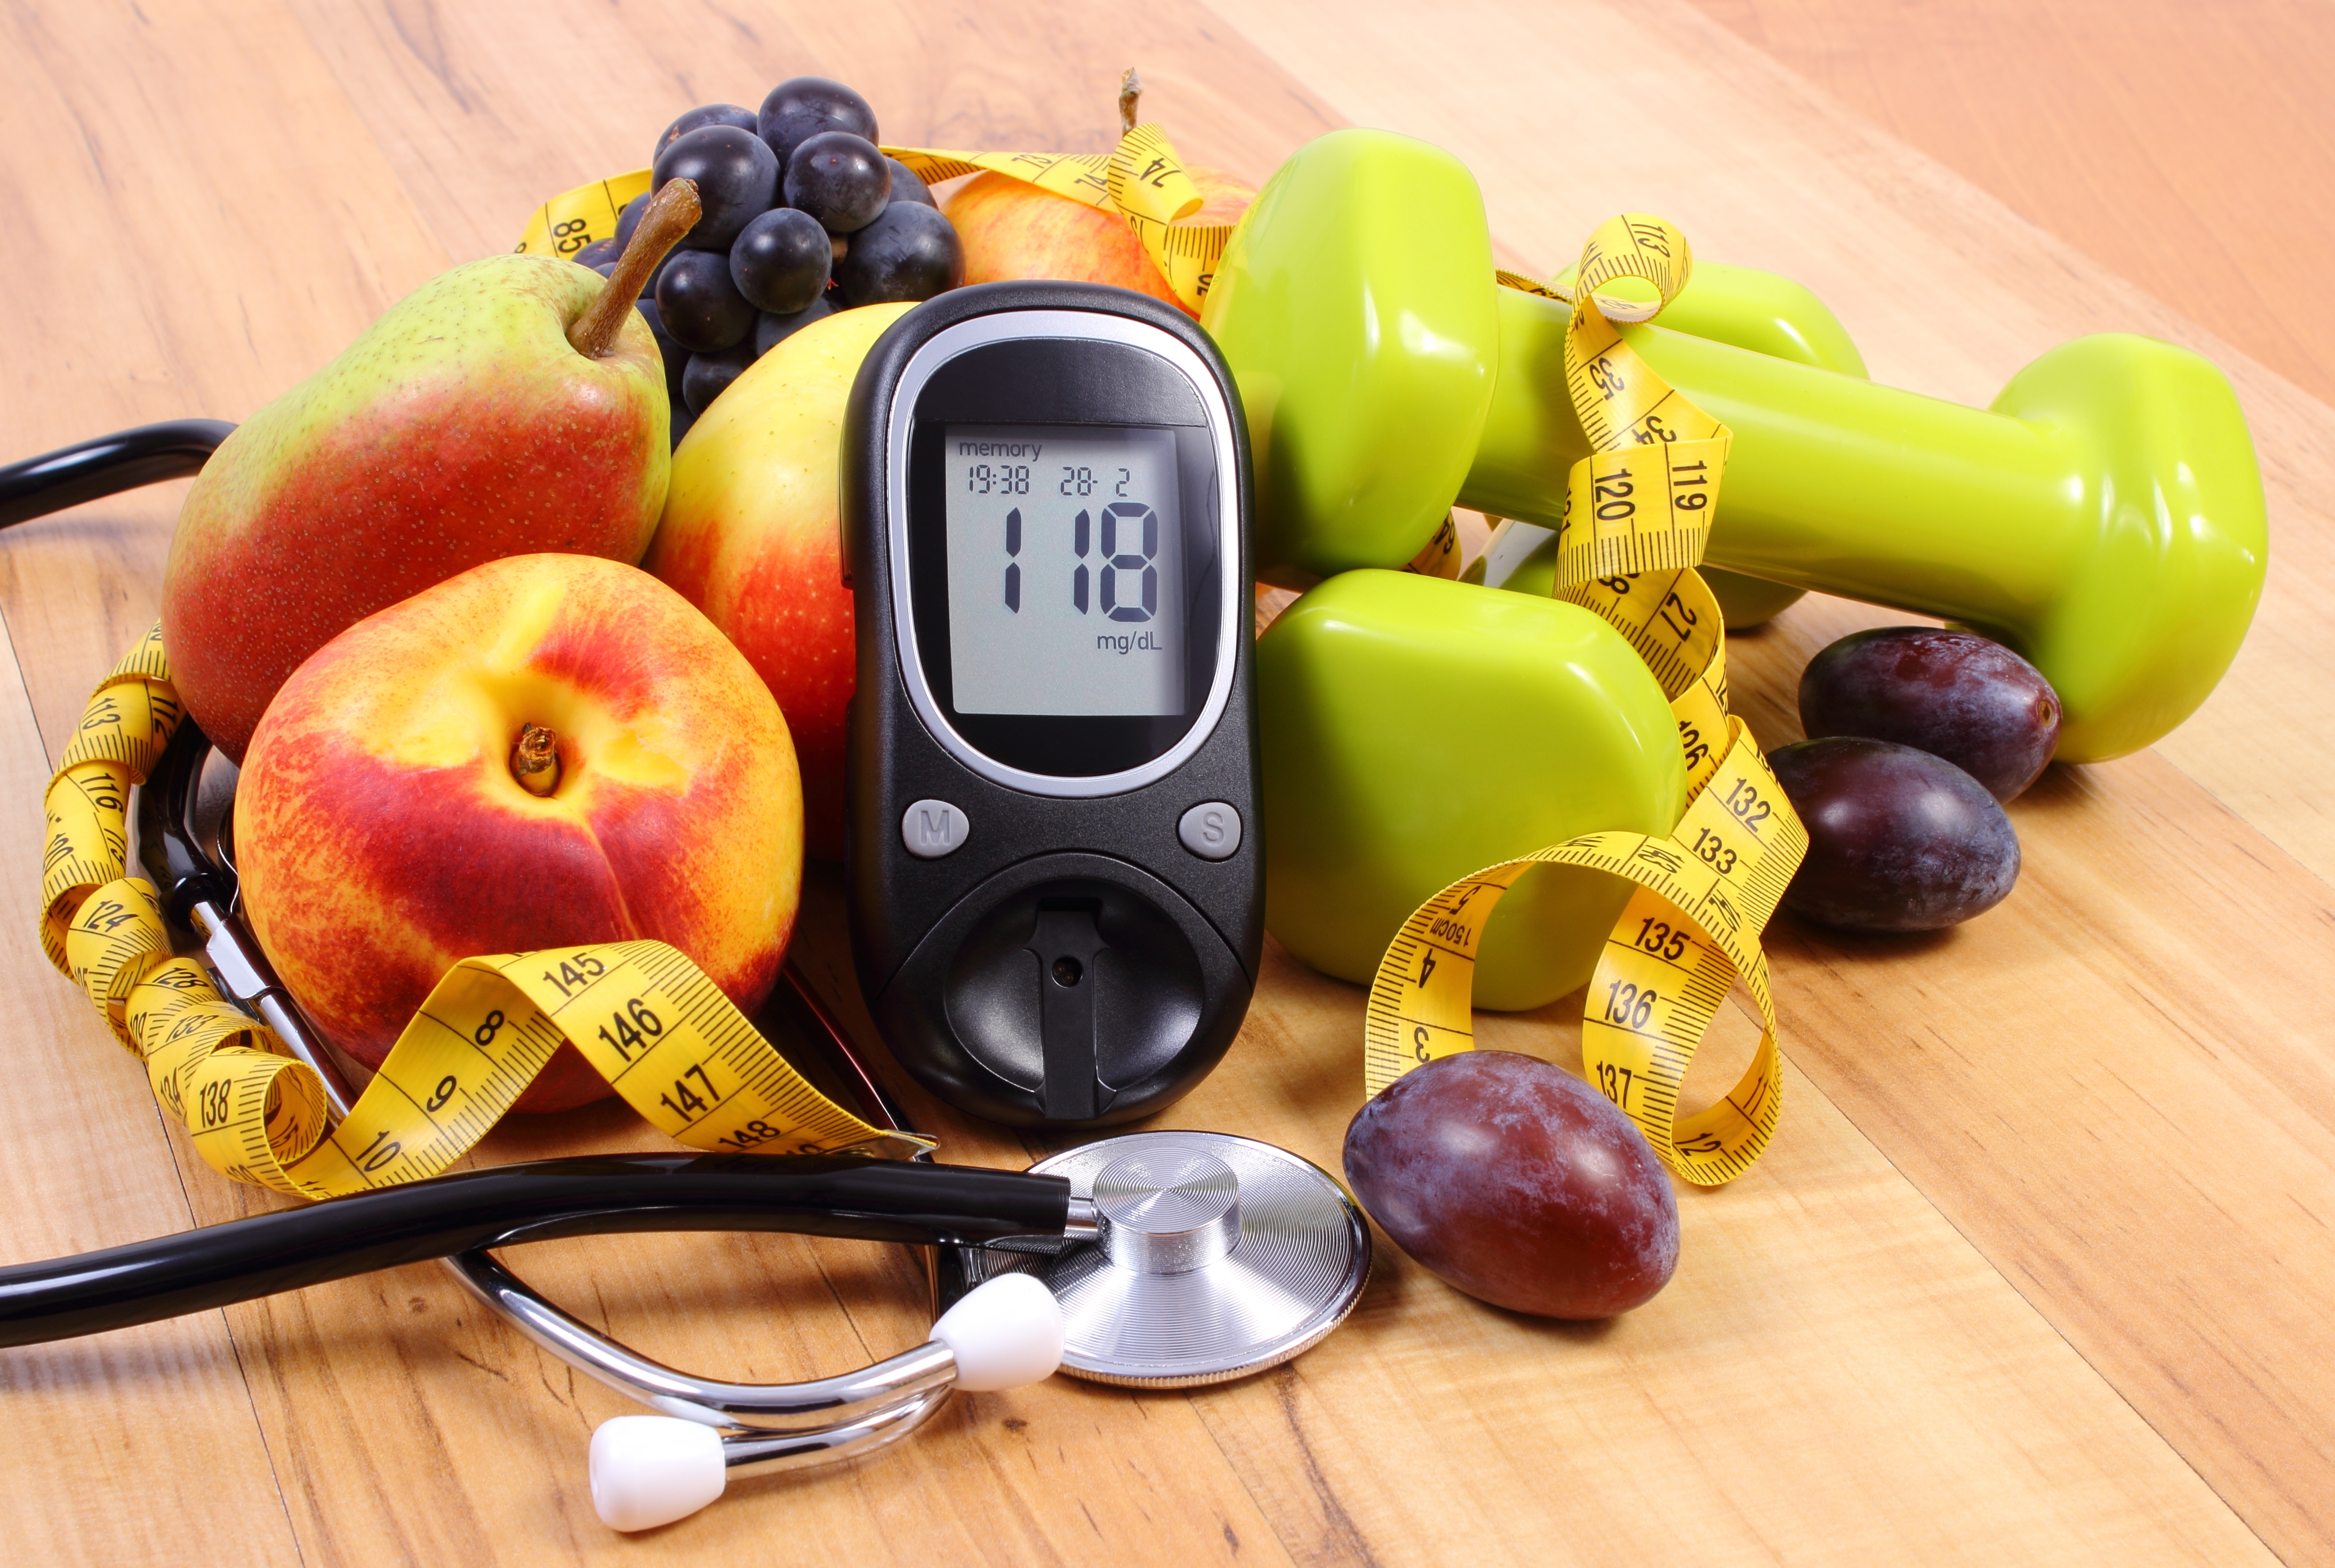 Glucose meter, fruits, dumbbells, diabetes, healthy lifestyle